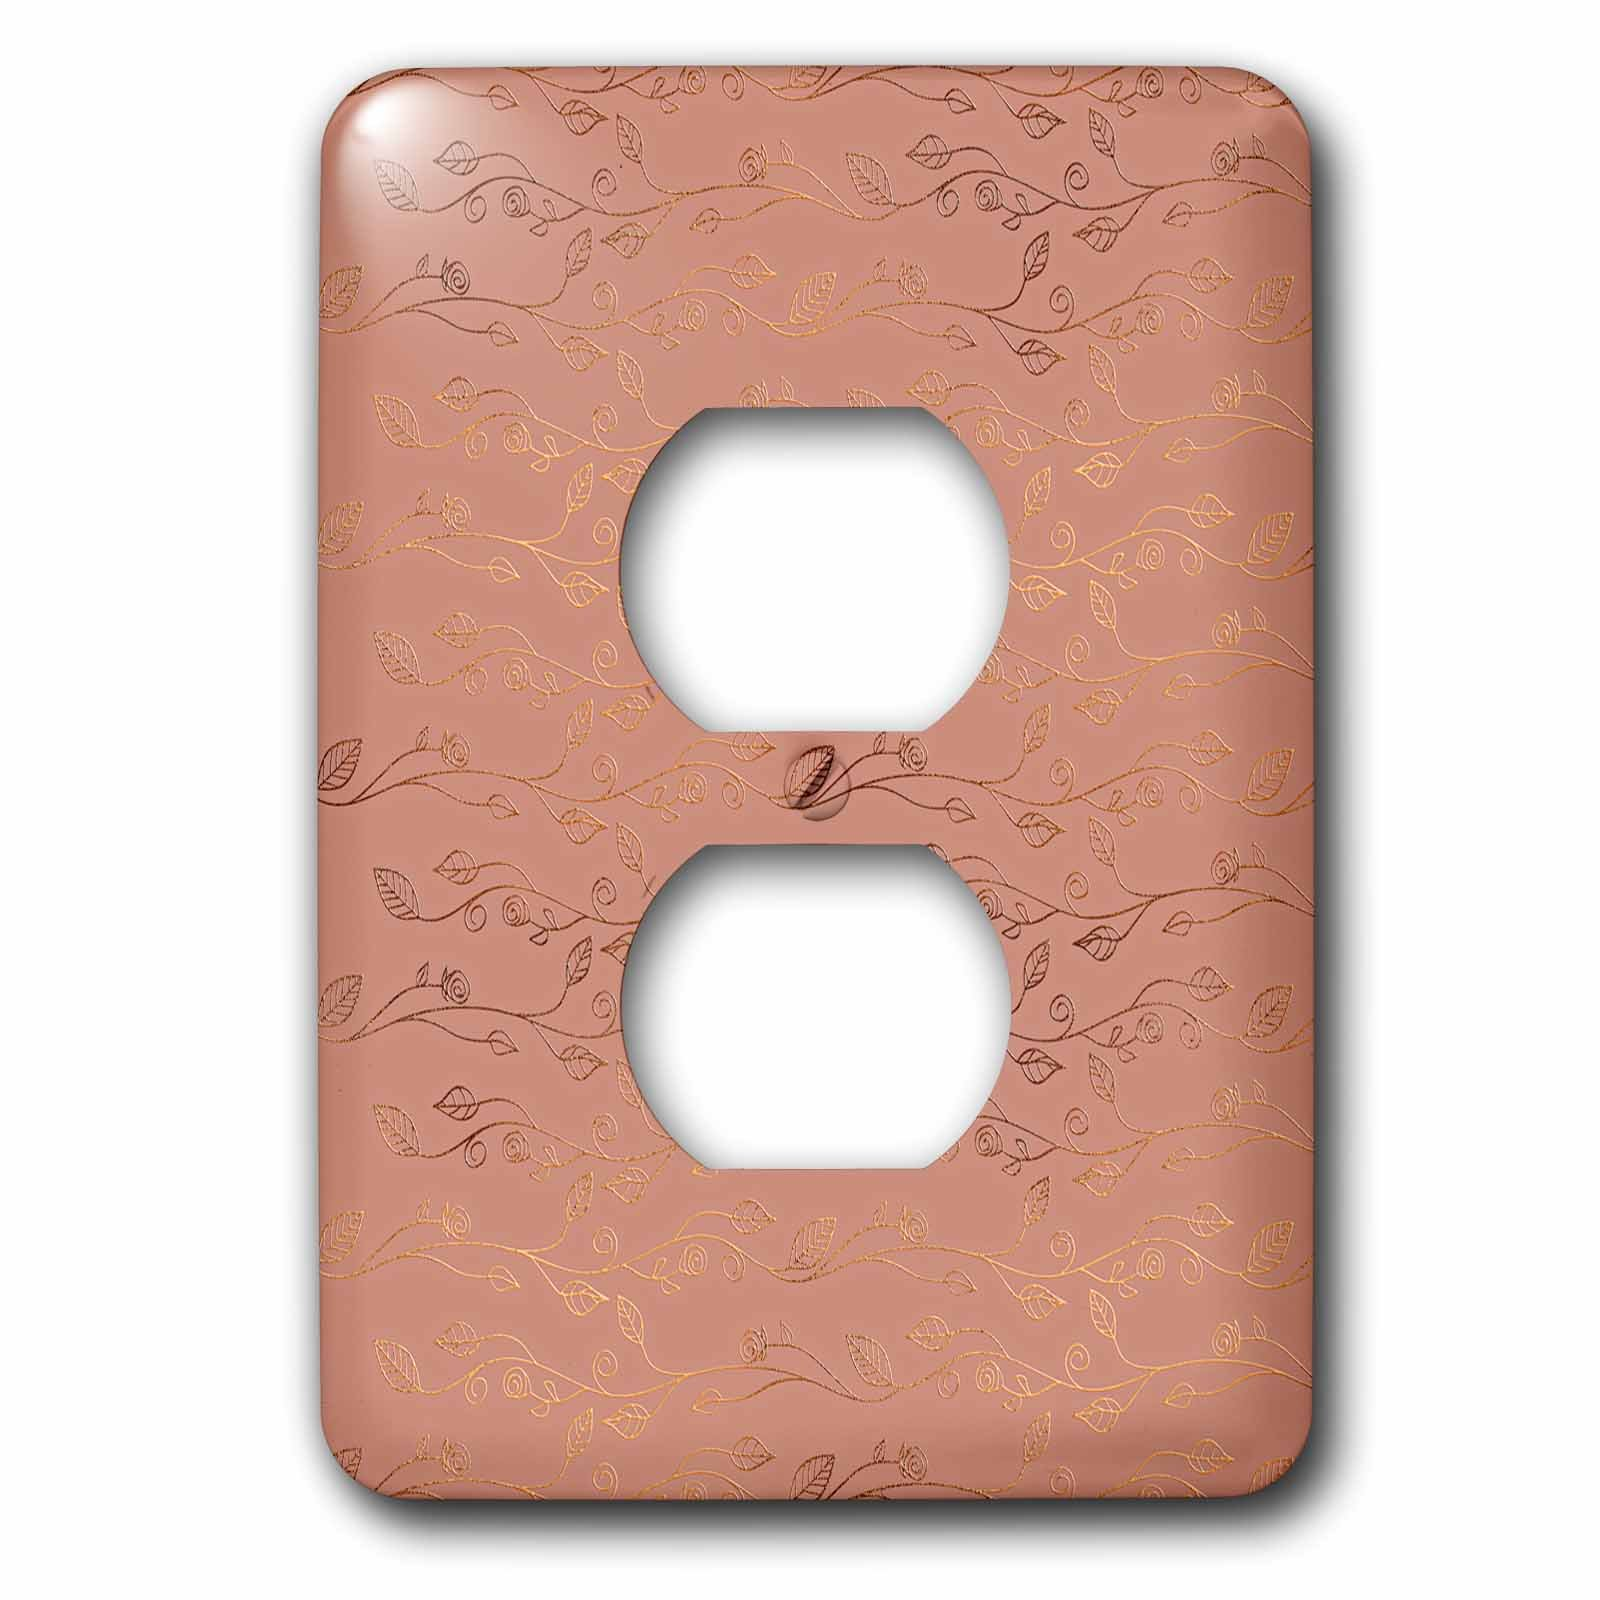 3dRose Uta Naumann Faux Glitter Pattern - Luxury Shiny Elegant Rose Gold Floral Flower Copper Damask Pattern - Light Switch Covers - 2 plug outlet cover (lsp_272880_6)